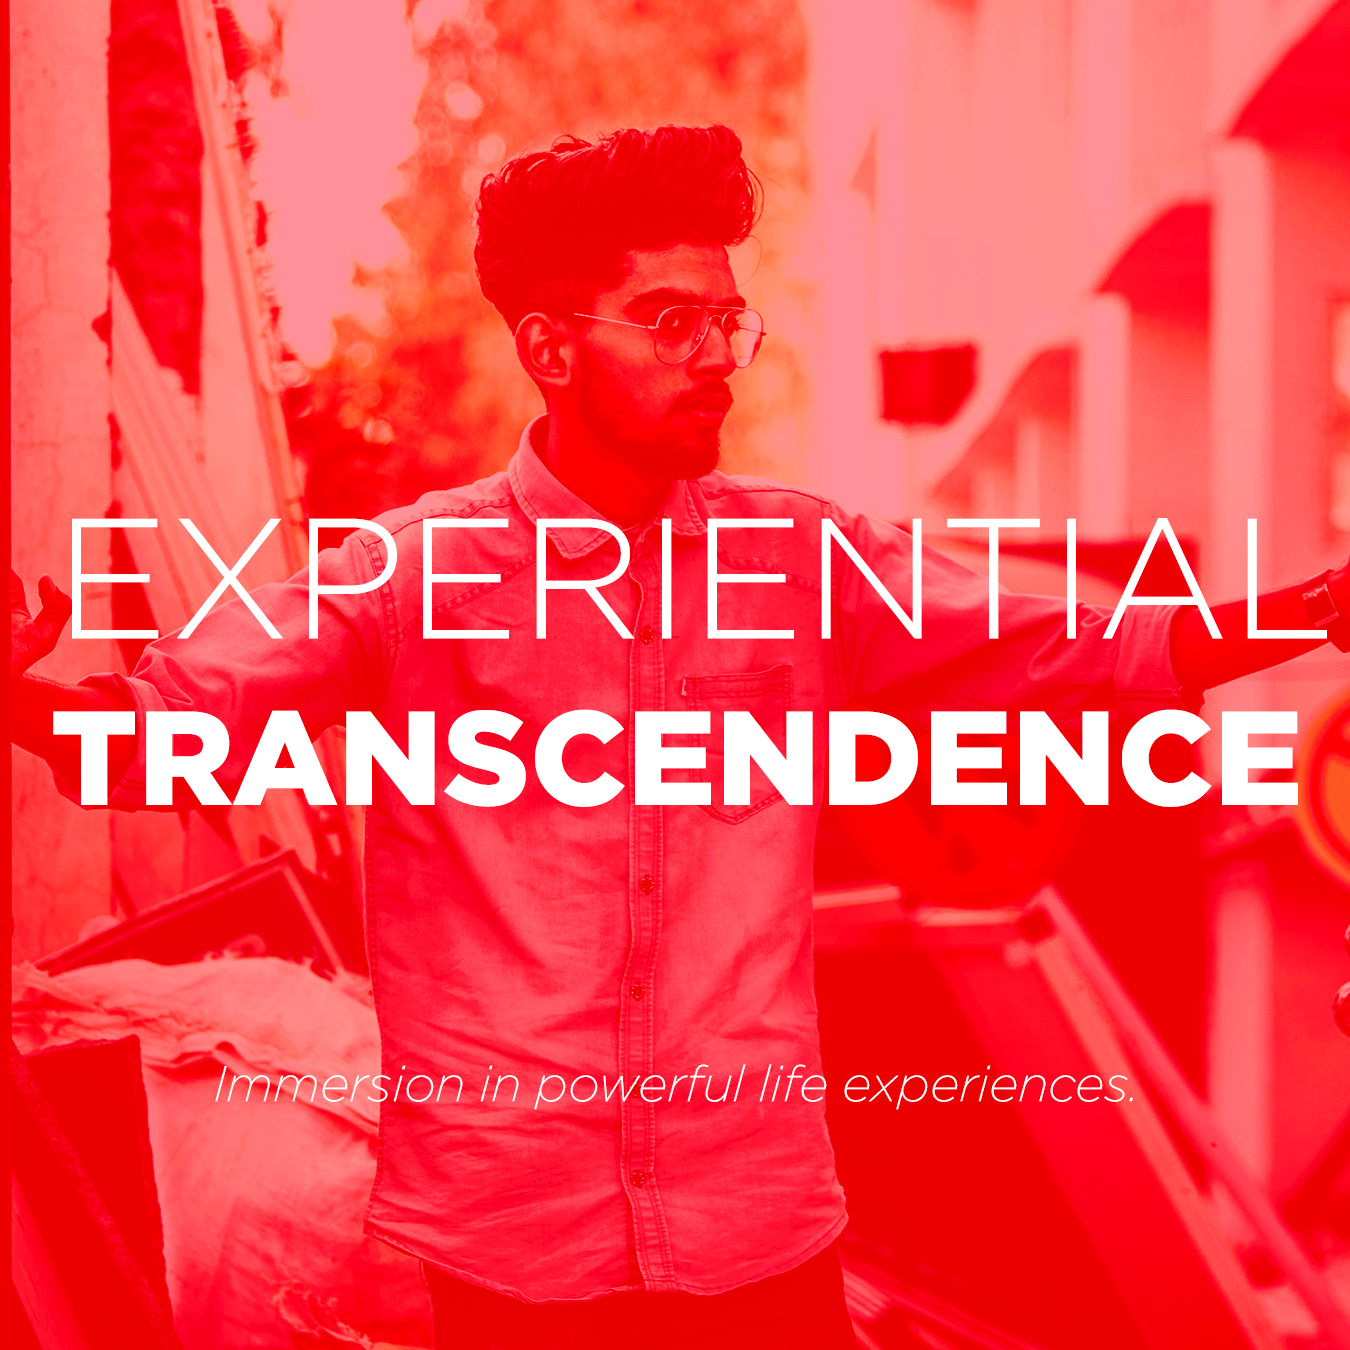 04 Experiential Transcendence.png